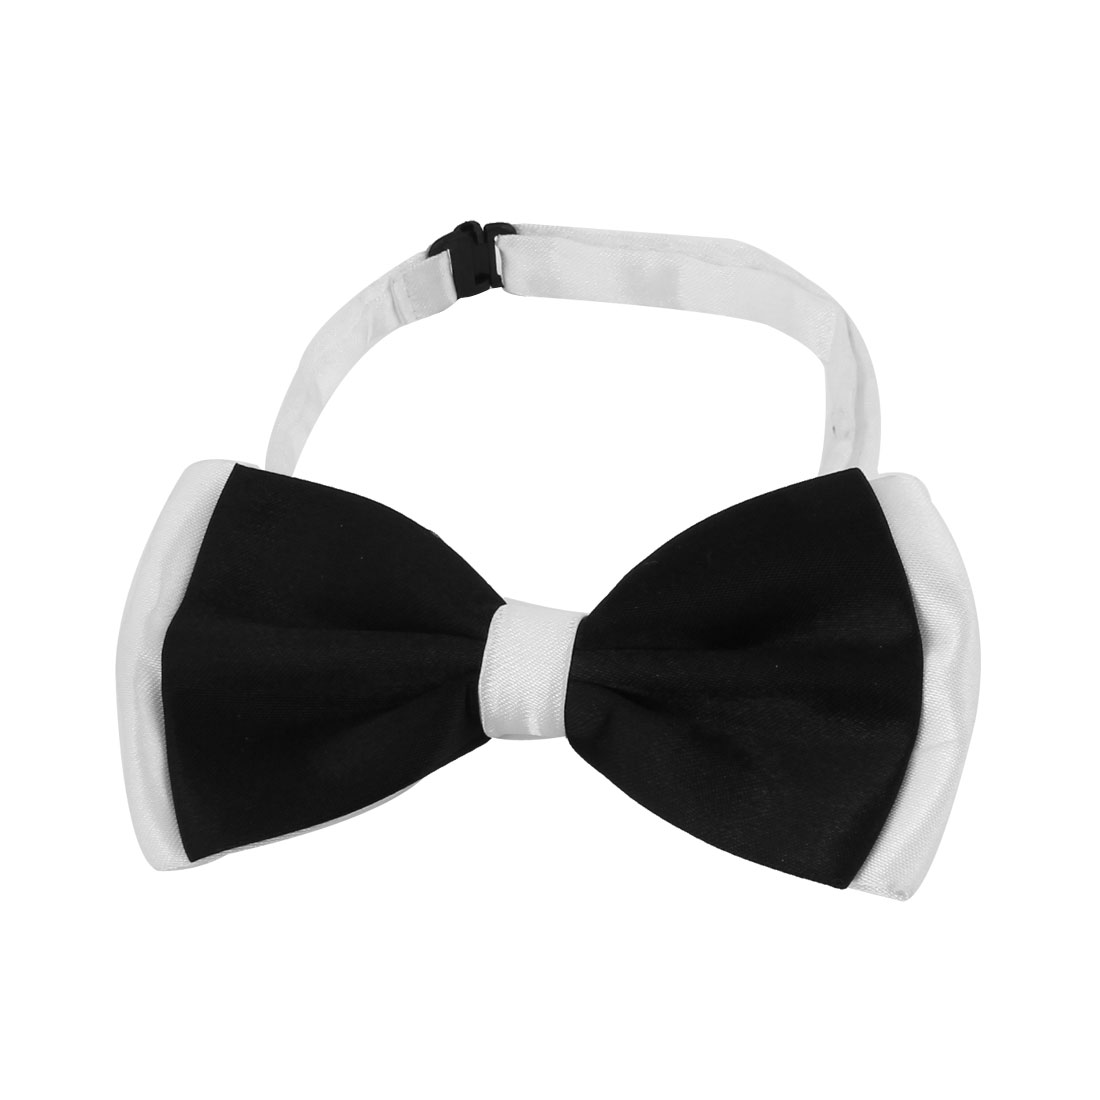 Ladies Women Black White Bowknot Accent Adjustable Neck Bow Tie